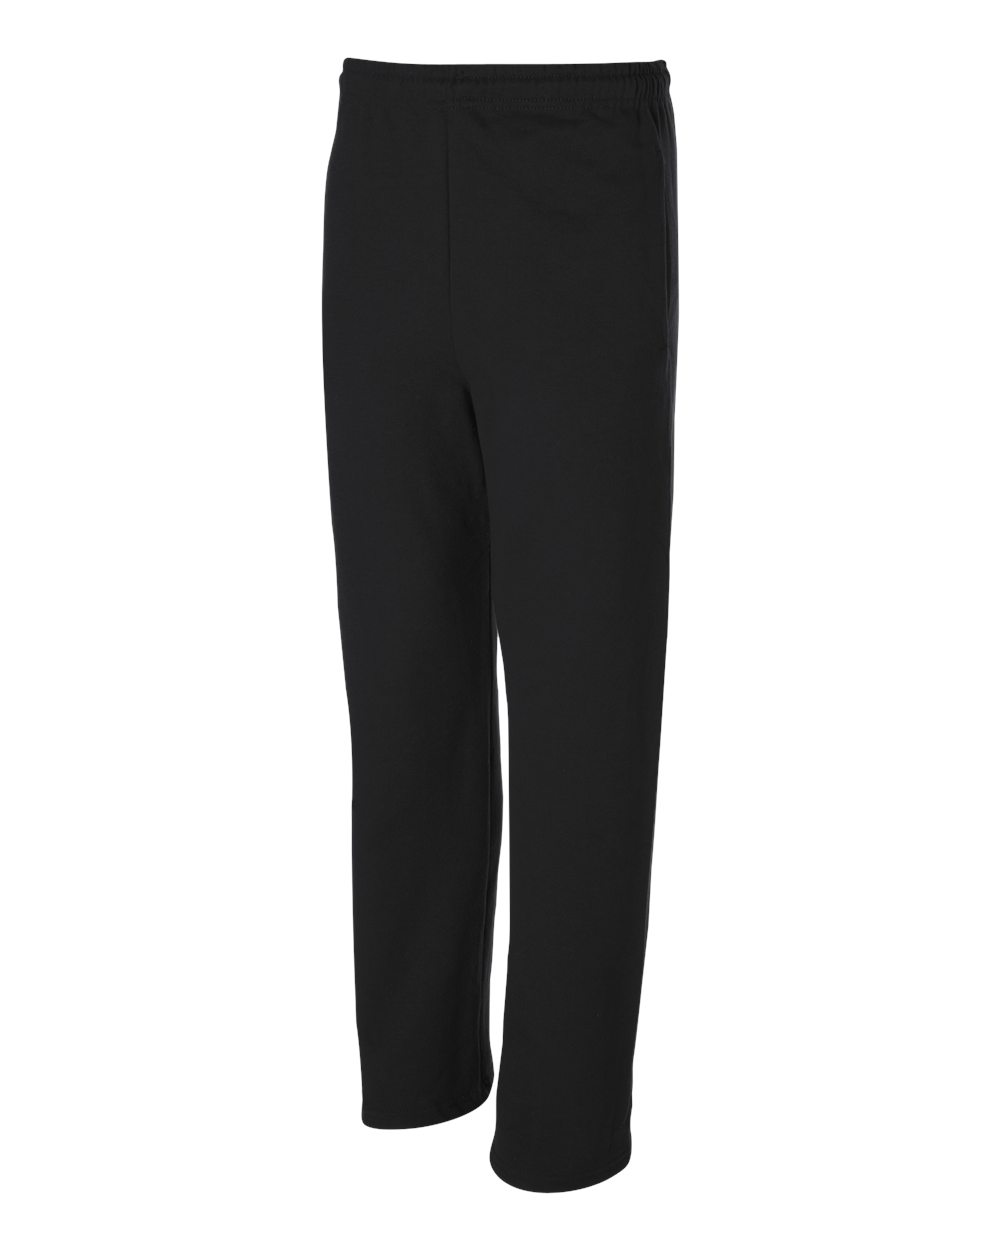 JERZEES 974MPR - NuBlend Open Bottom Pocketed Sweatpants